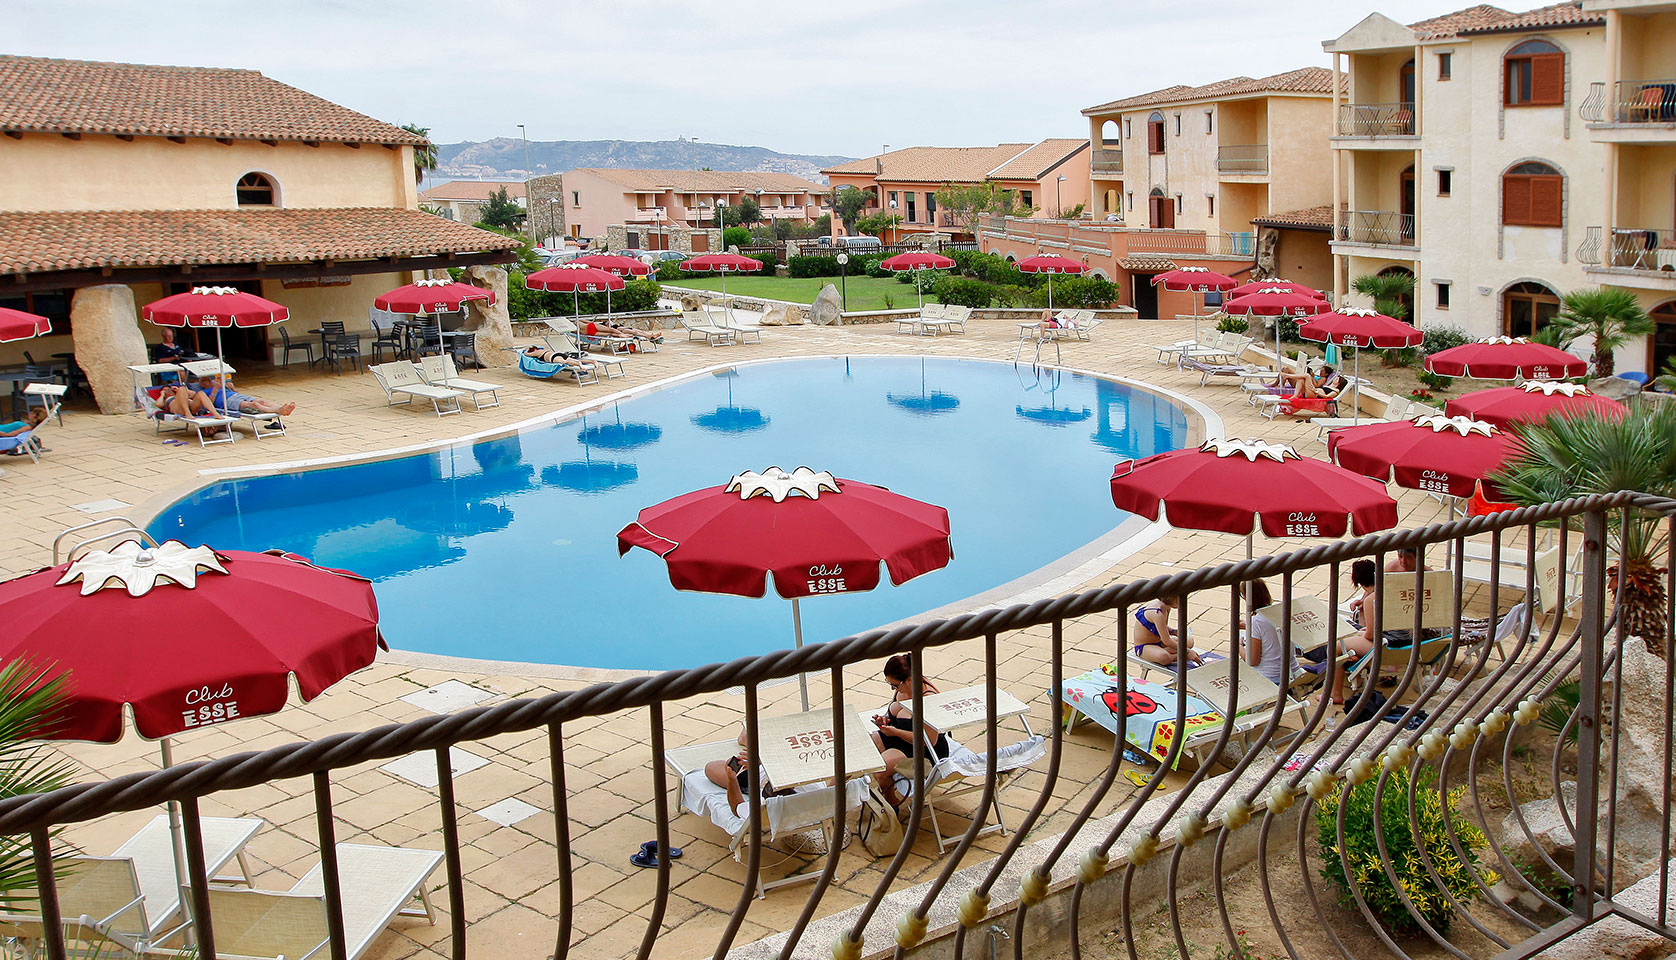 Club esse posada beach resort palau sardinia italy for Hotel palau sardegna